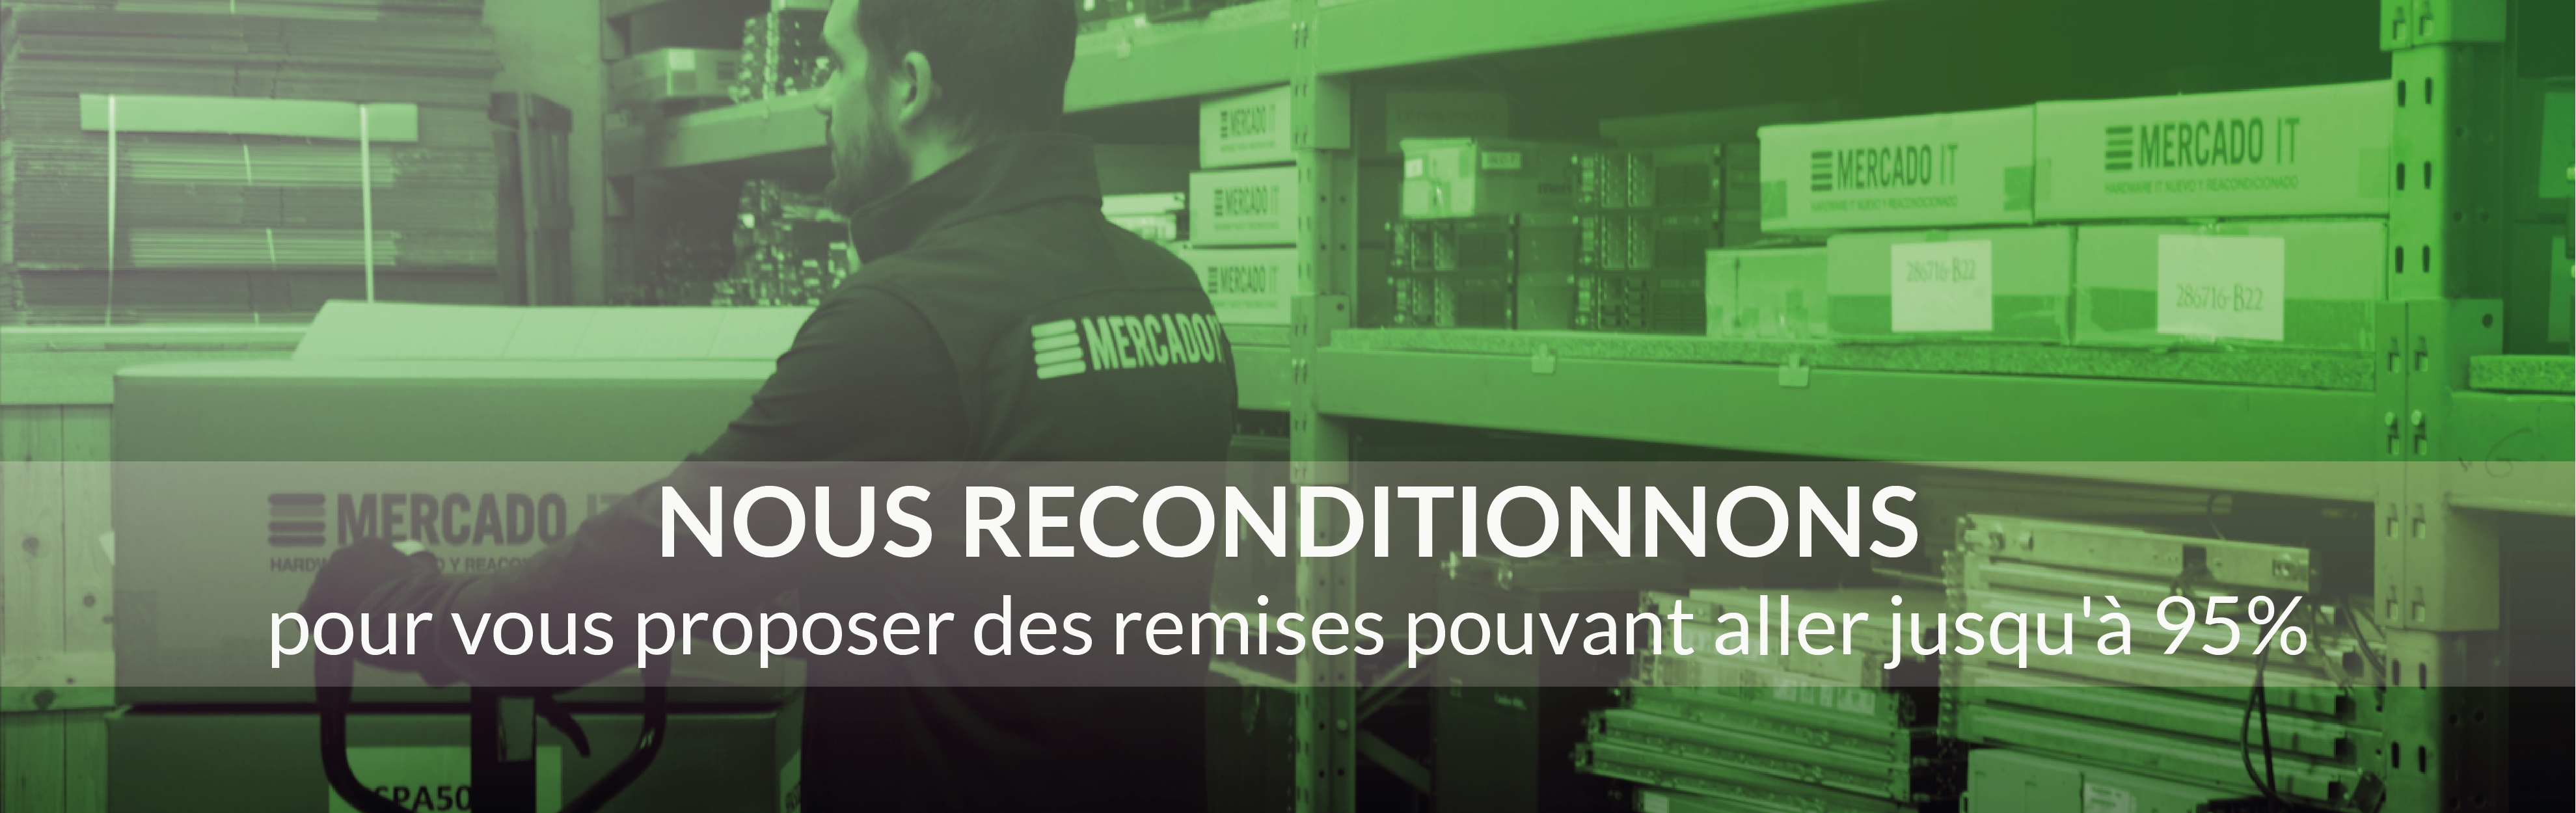 Nous reconditionnons